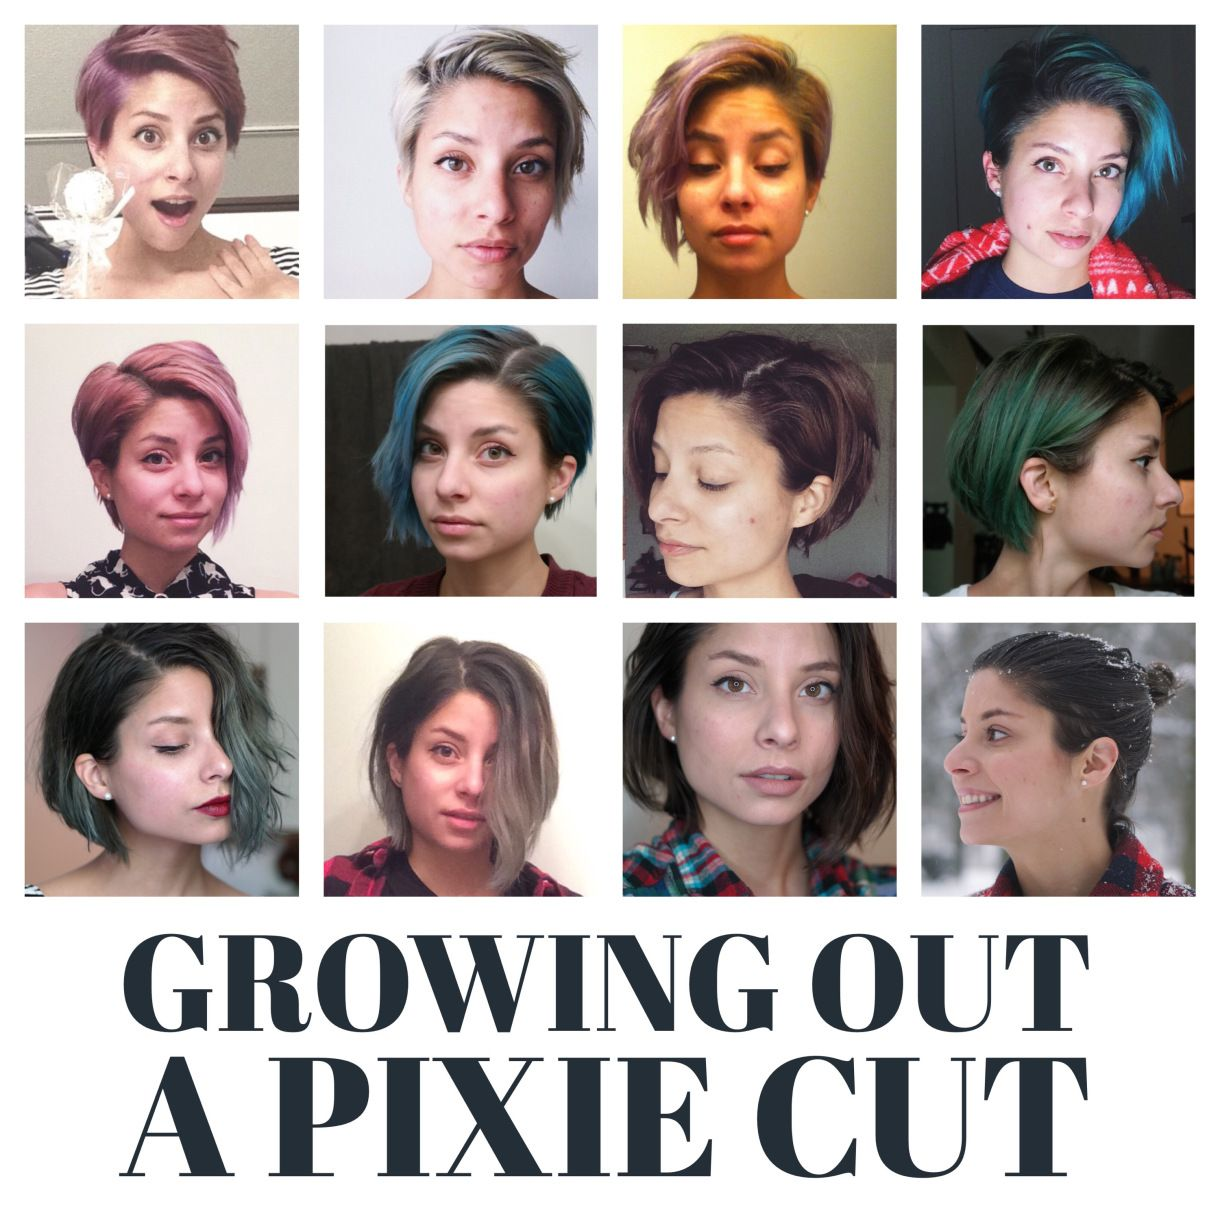 Love This Diagram Showing How To Grow Out Short Hair I M Growing Out My Hair Wish Me Luck Growing Out Hair Growing Out Short Hair Styles Hair Beauty